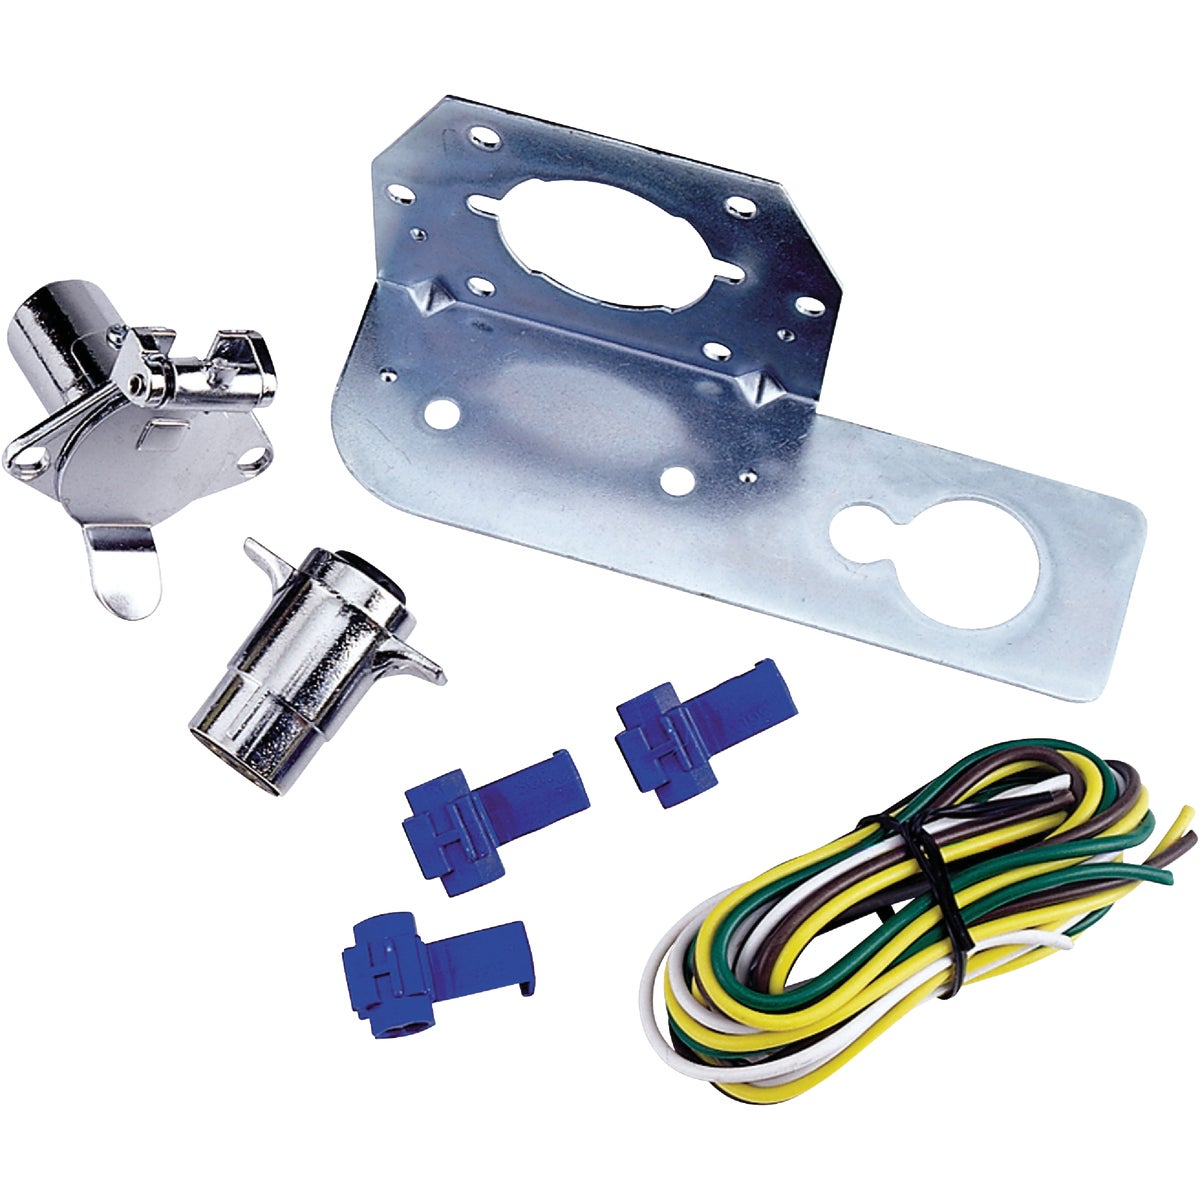 4-POLE CONNECTOR KIT - 48285 by Hopkins Mfg Corp